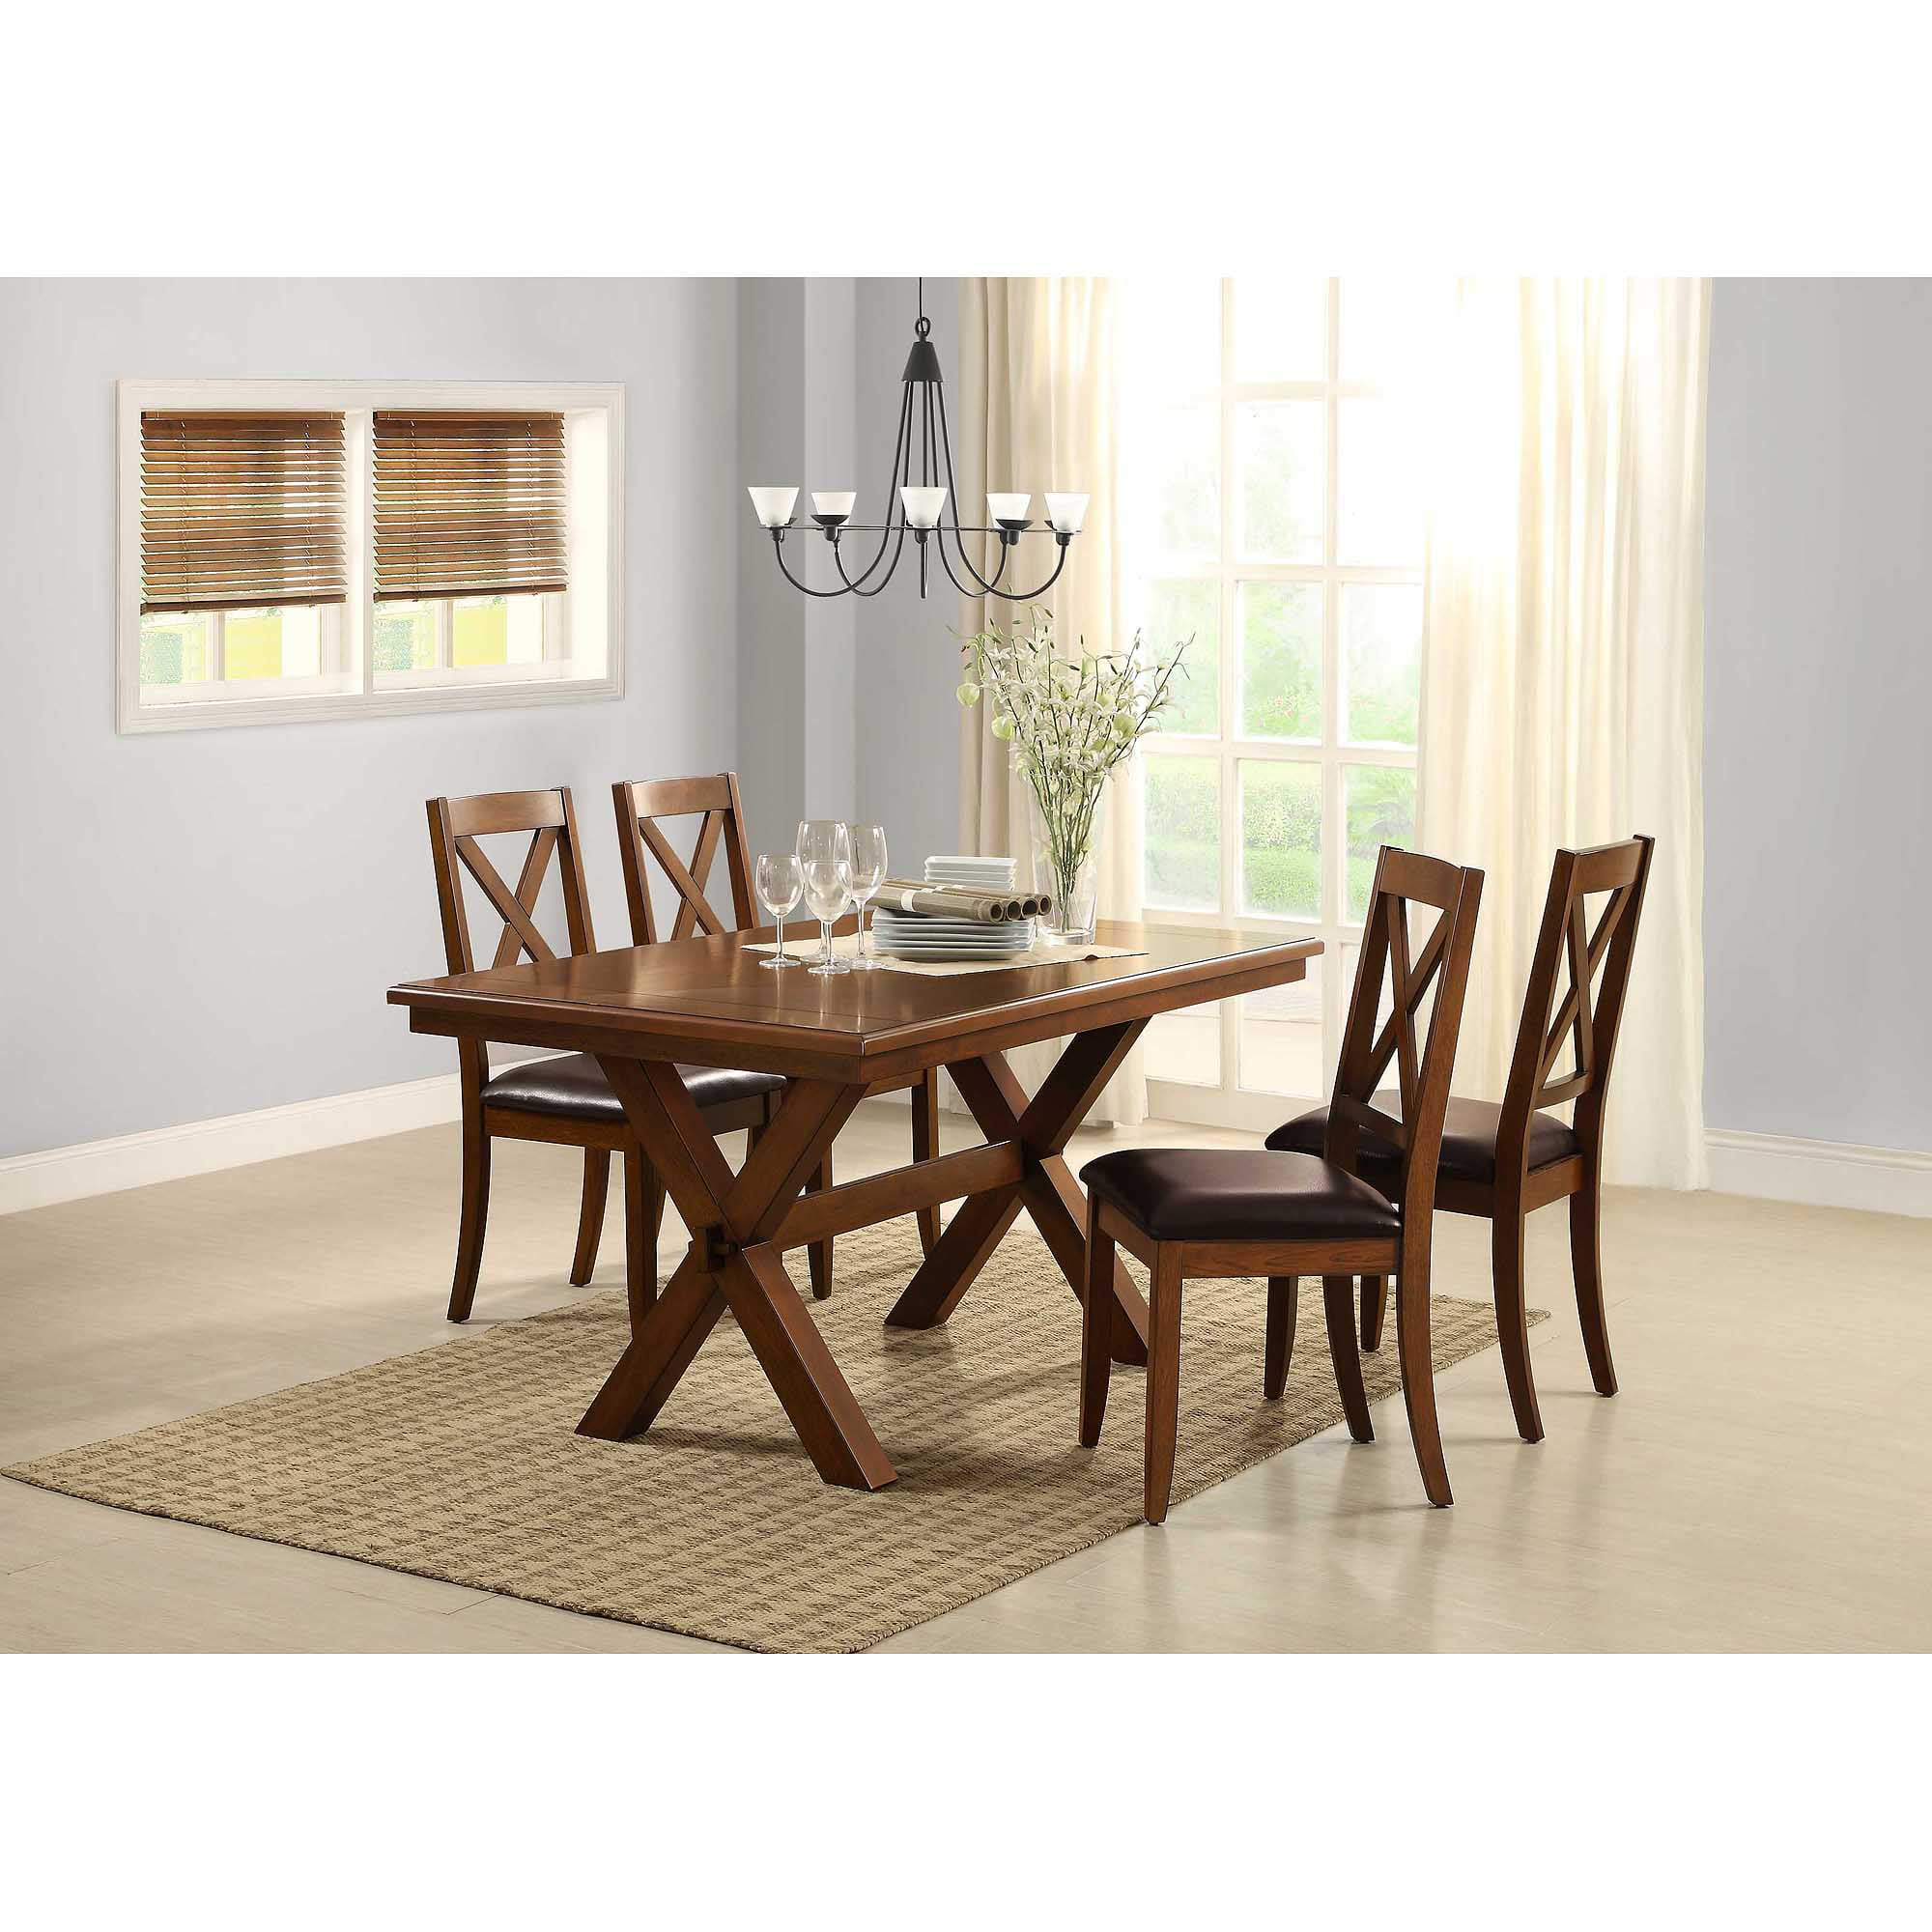 Better Homes Gardens Maddox Crossing Dining Table